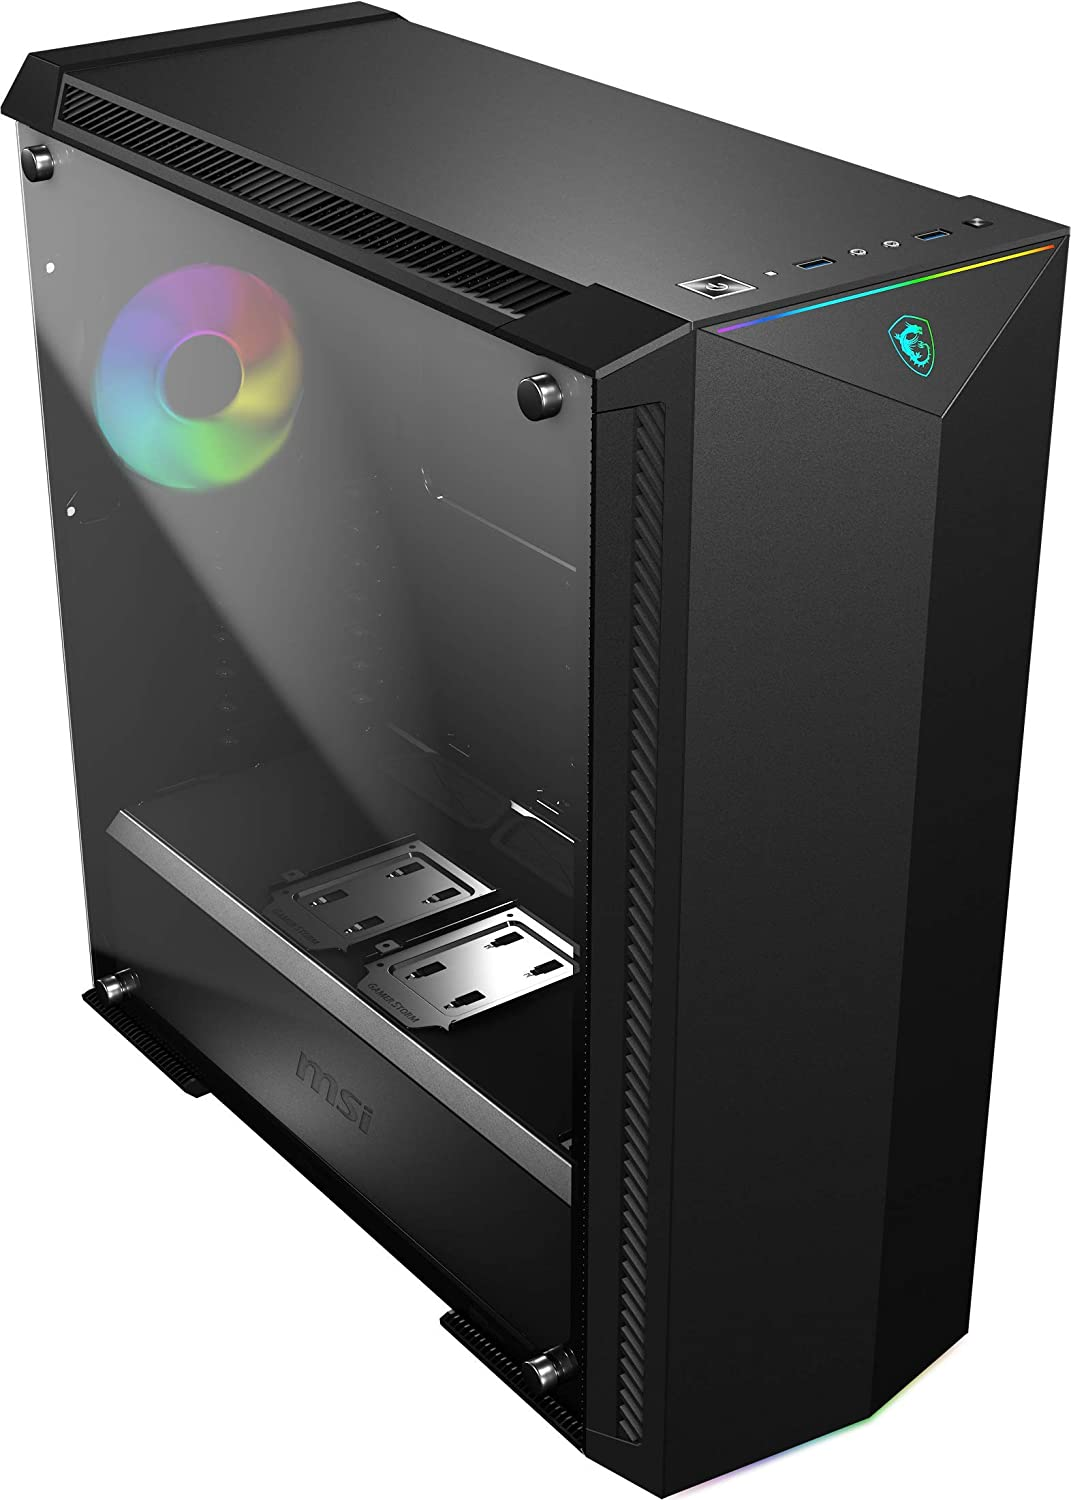 MSI Premium Mid-Tower PC Gaming Case – Tempered Glass Side Panel – RGB 120mm Fan – Liquid Cooling Support up to 420mm Radiator x 1 – Cable Management System – MPG GUNGNIR 100